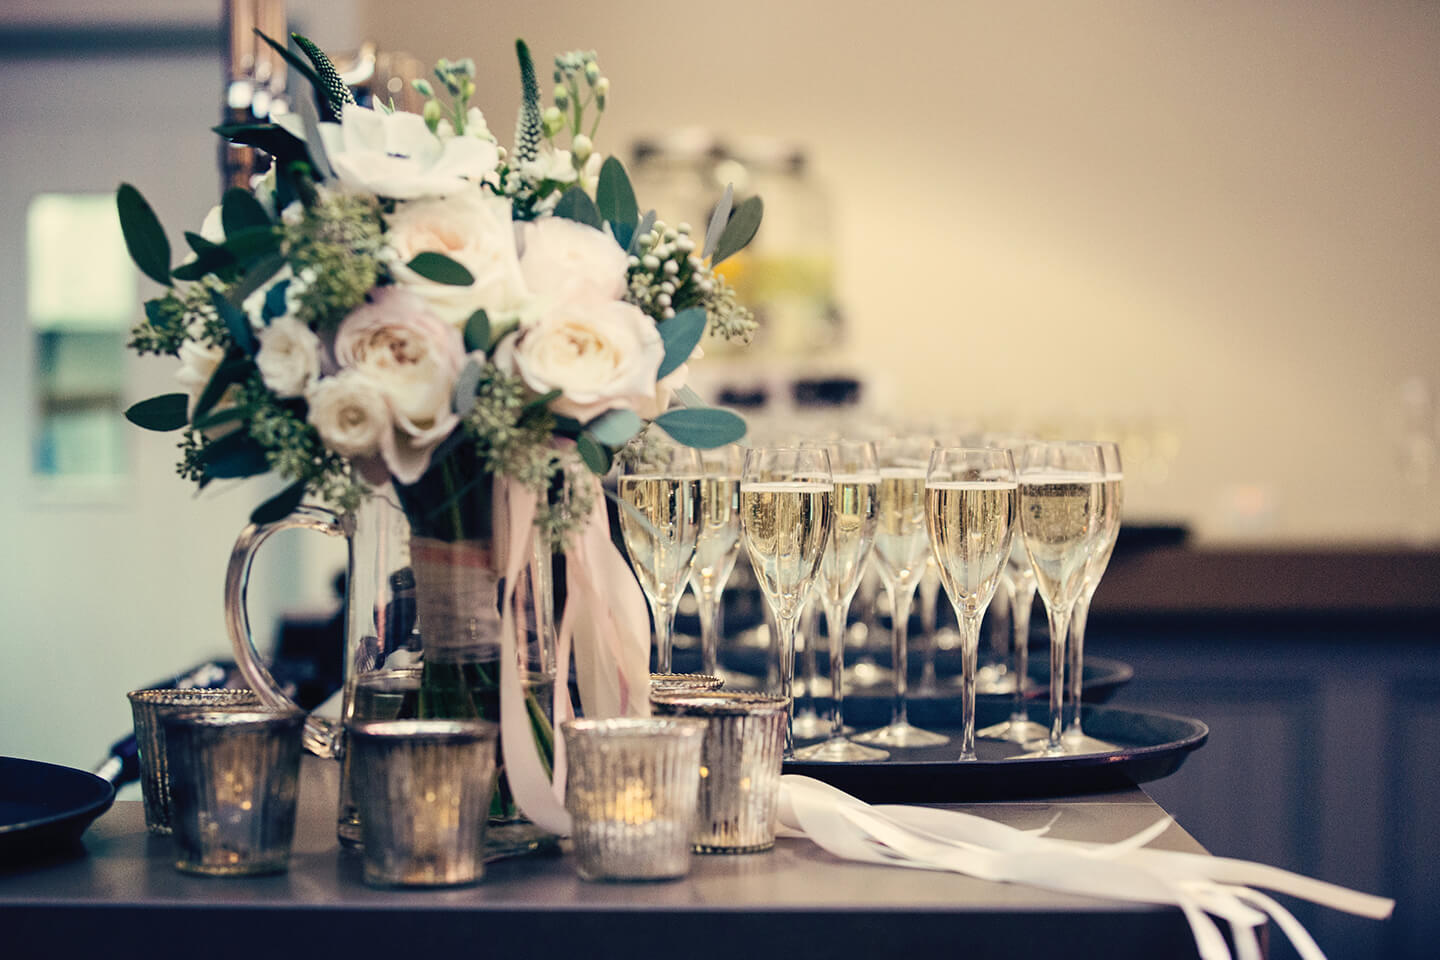 Glasses of champagne await guests during the wedding reception – winter wedding ideas